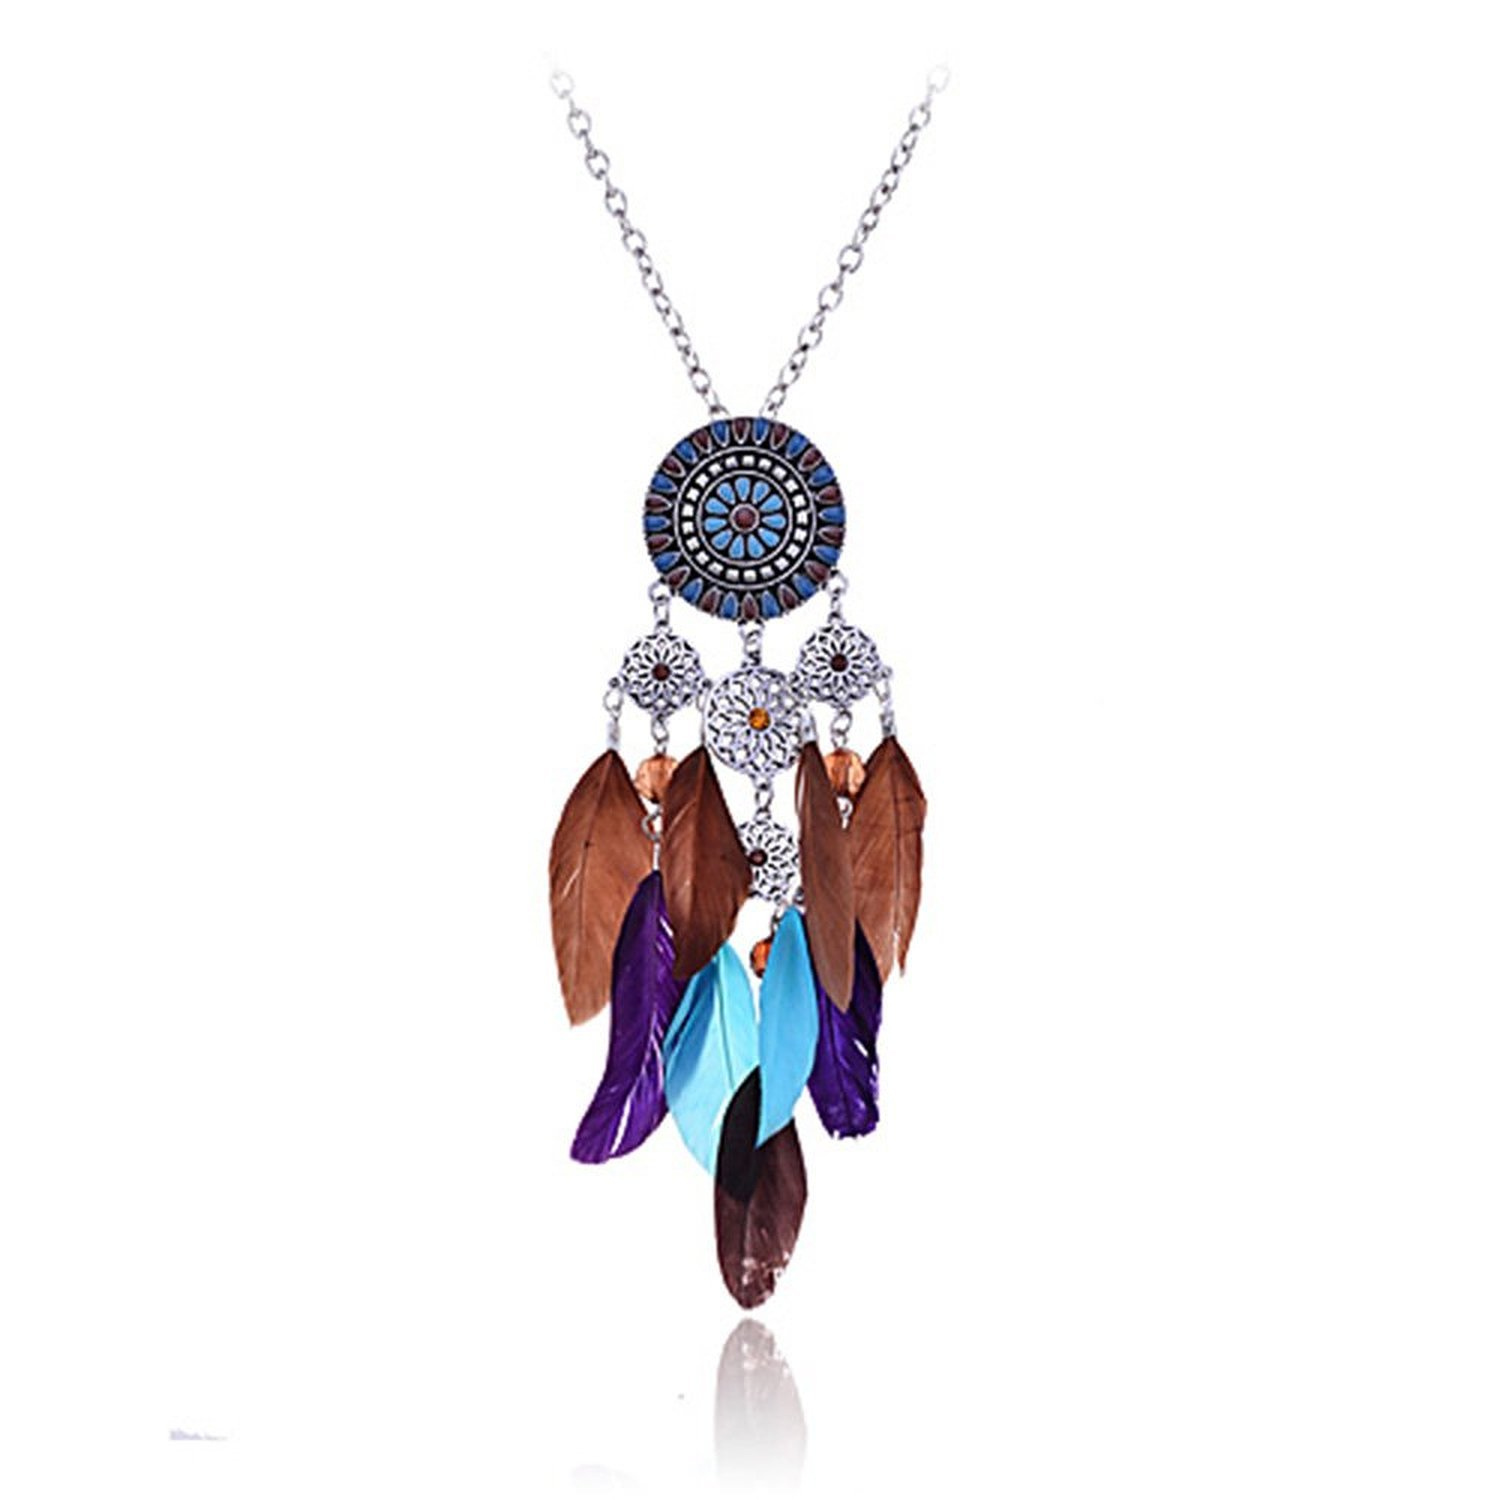 s american feather products cammieshomestore store handmade cammie necklace watchesethnic jewelry americansets amethyst native silver tribalnative home regional